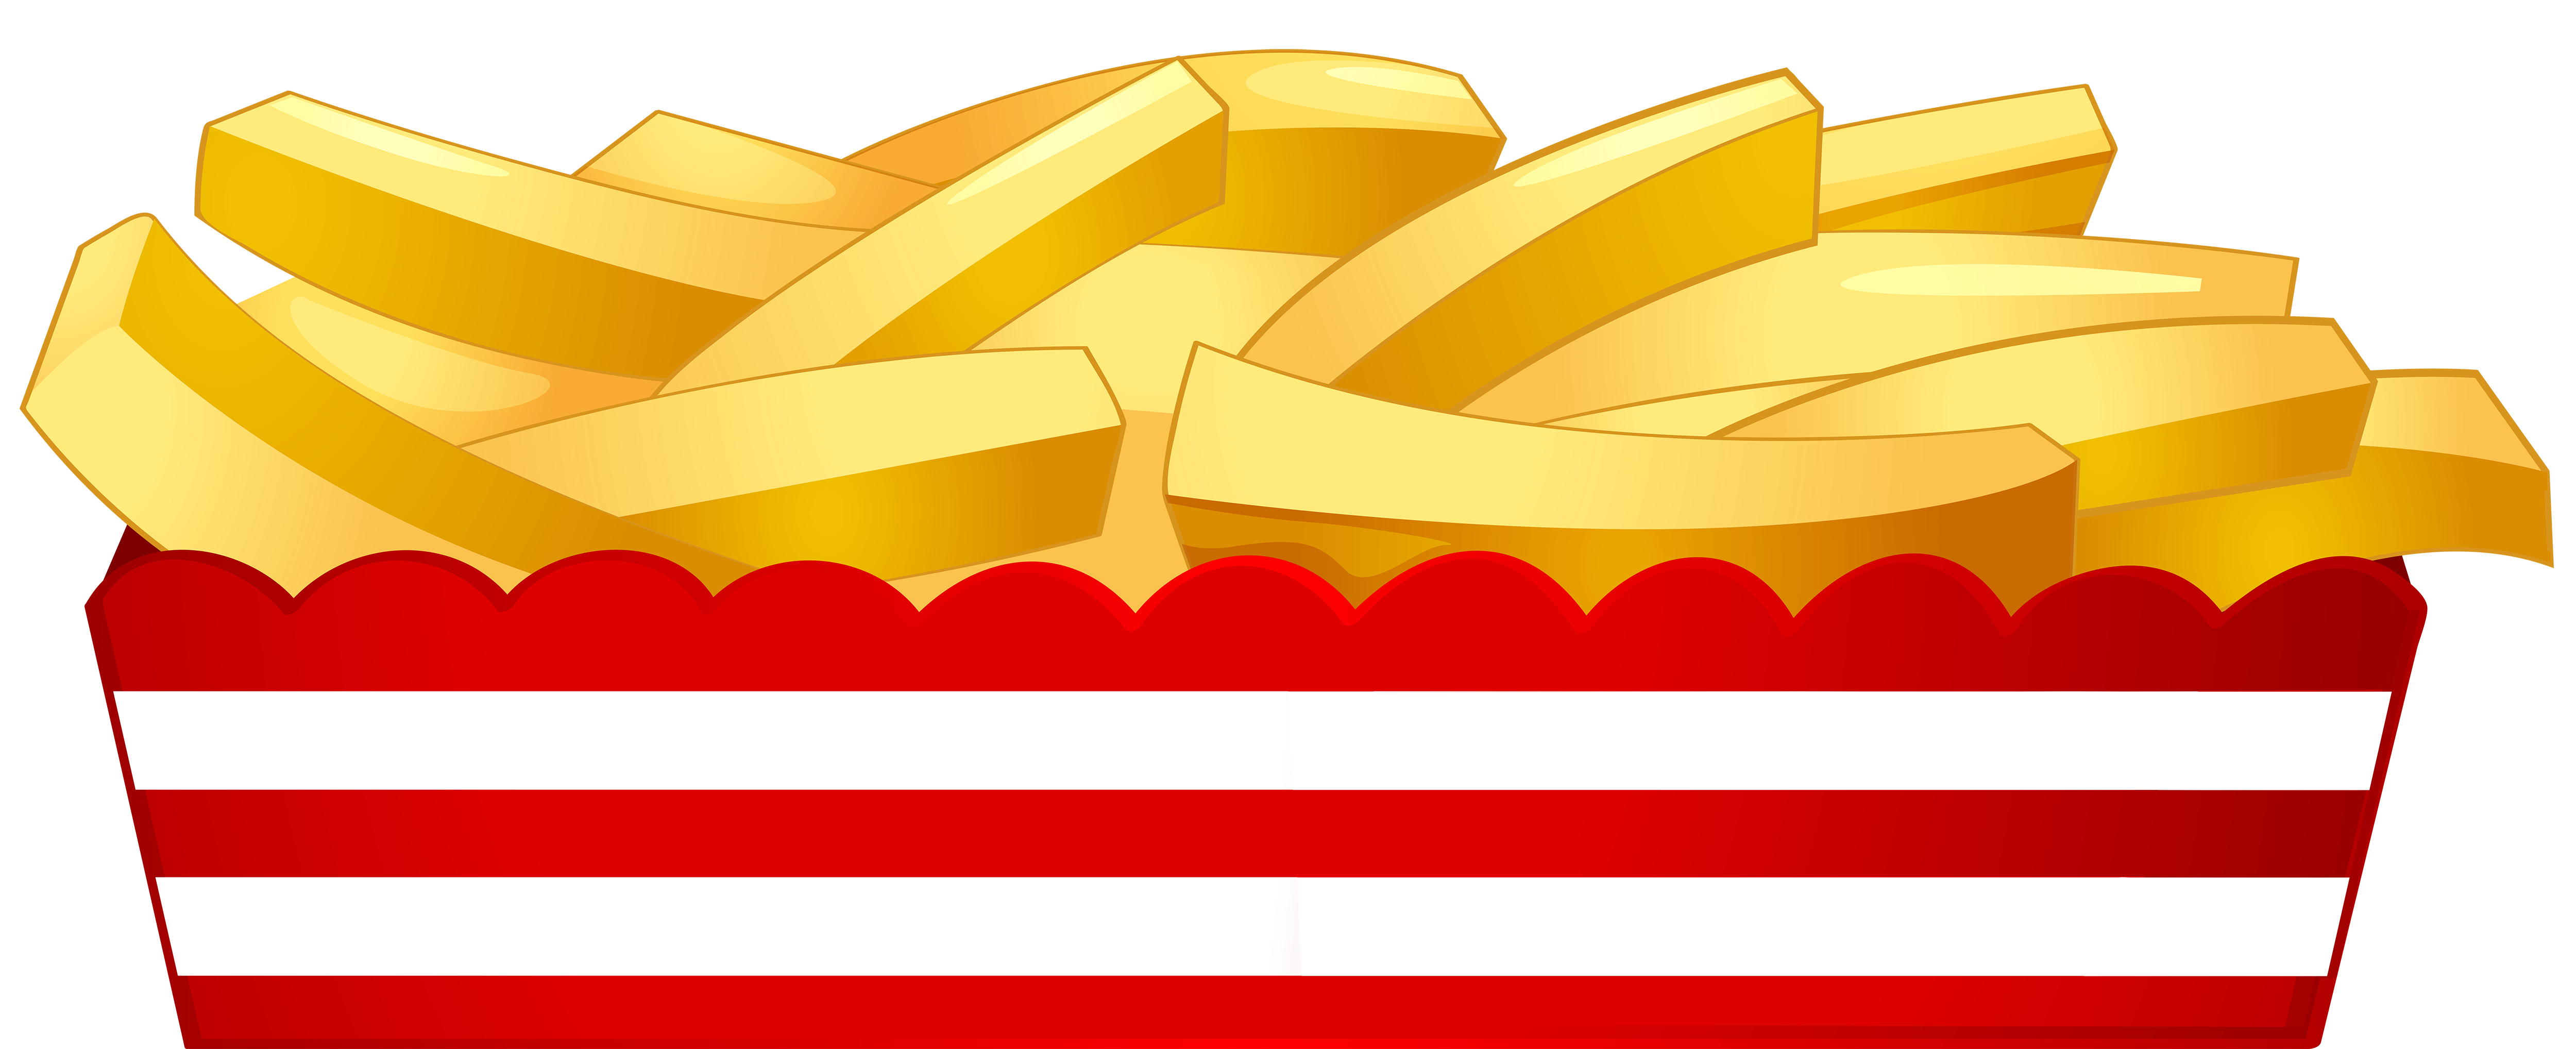 French fry clipart free - ClipartFest